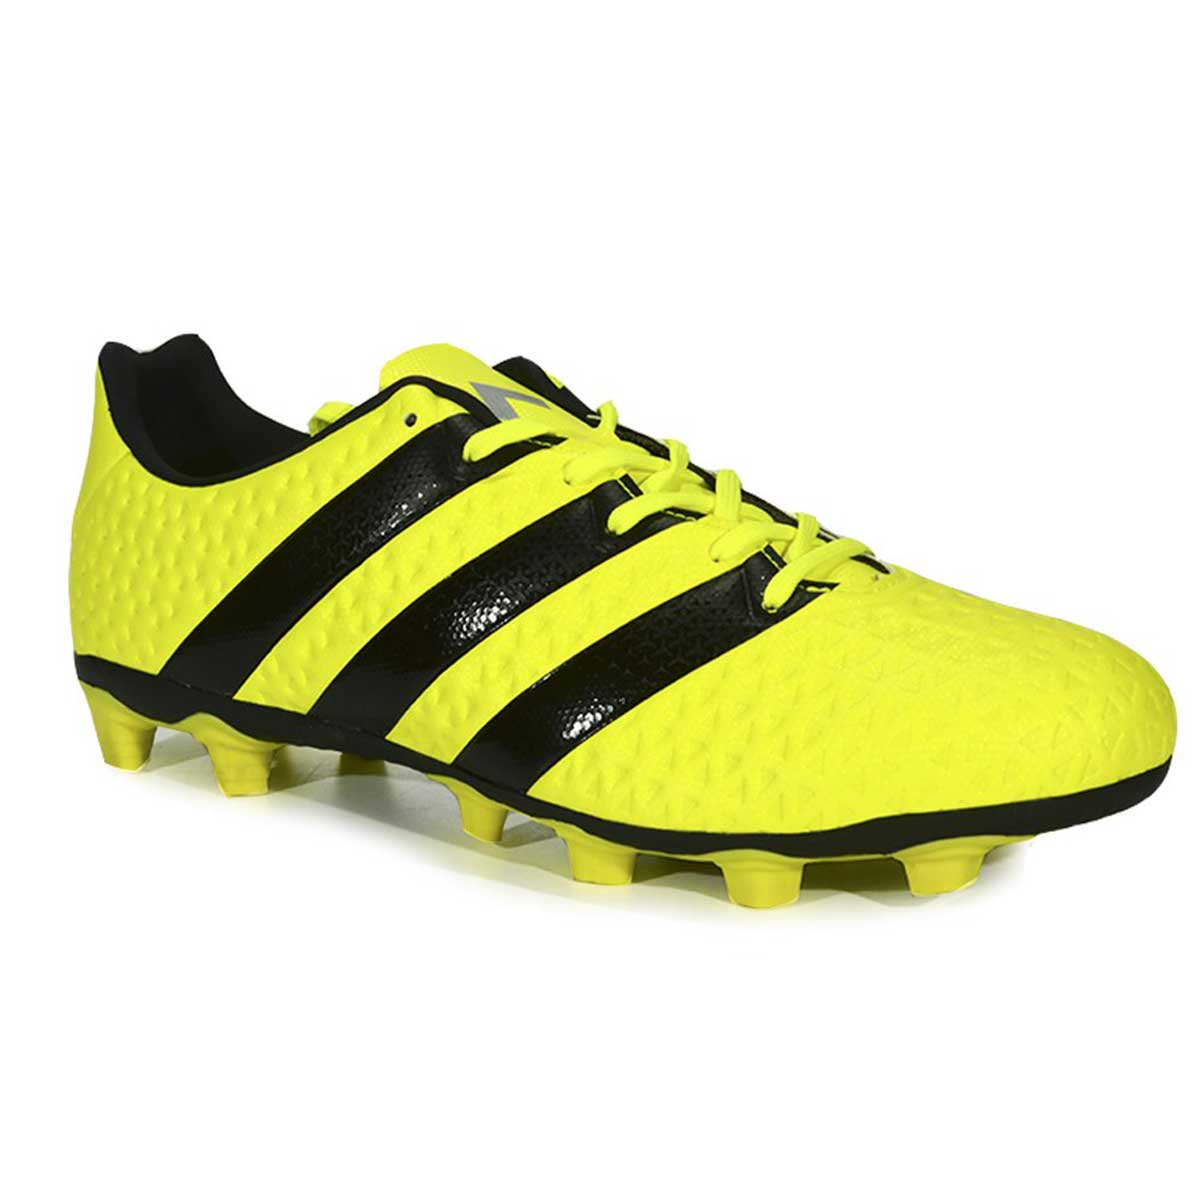 2d0baab87c8 Buy Adidas ACE 16.4 FXG Football Shoes (Yellow Black Silver) Online